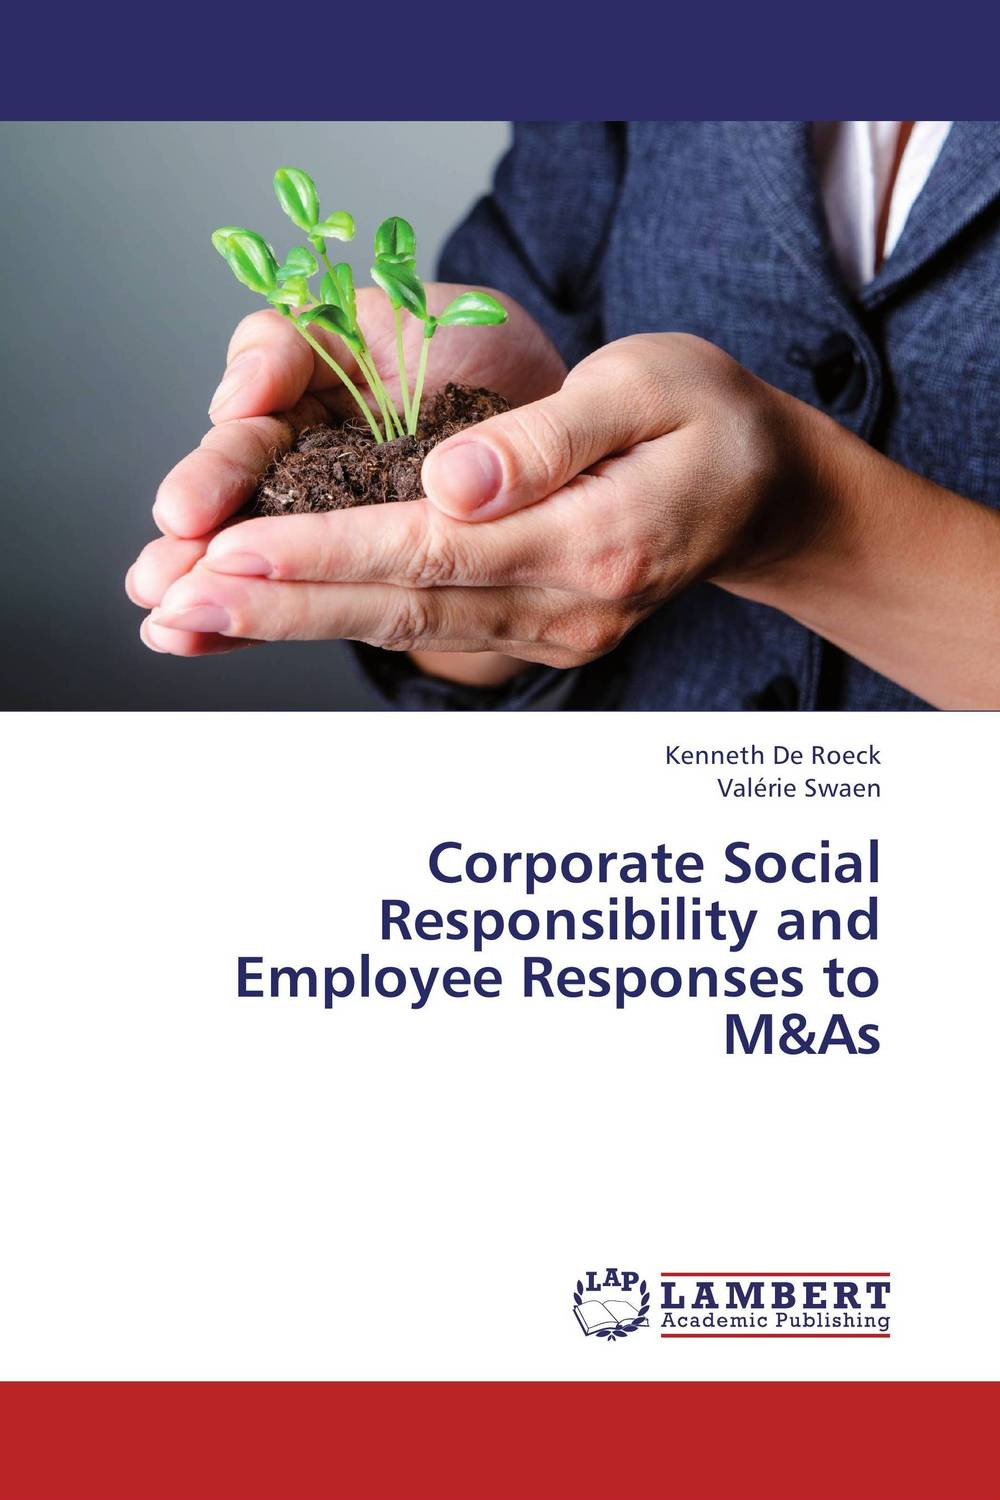 Corporate Social Responsibility and Employee Responses to M&As change from a human perspective